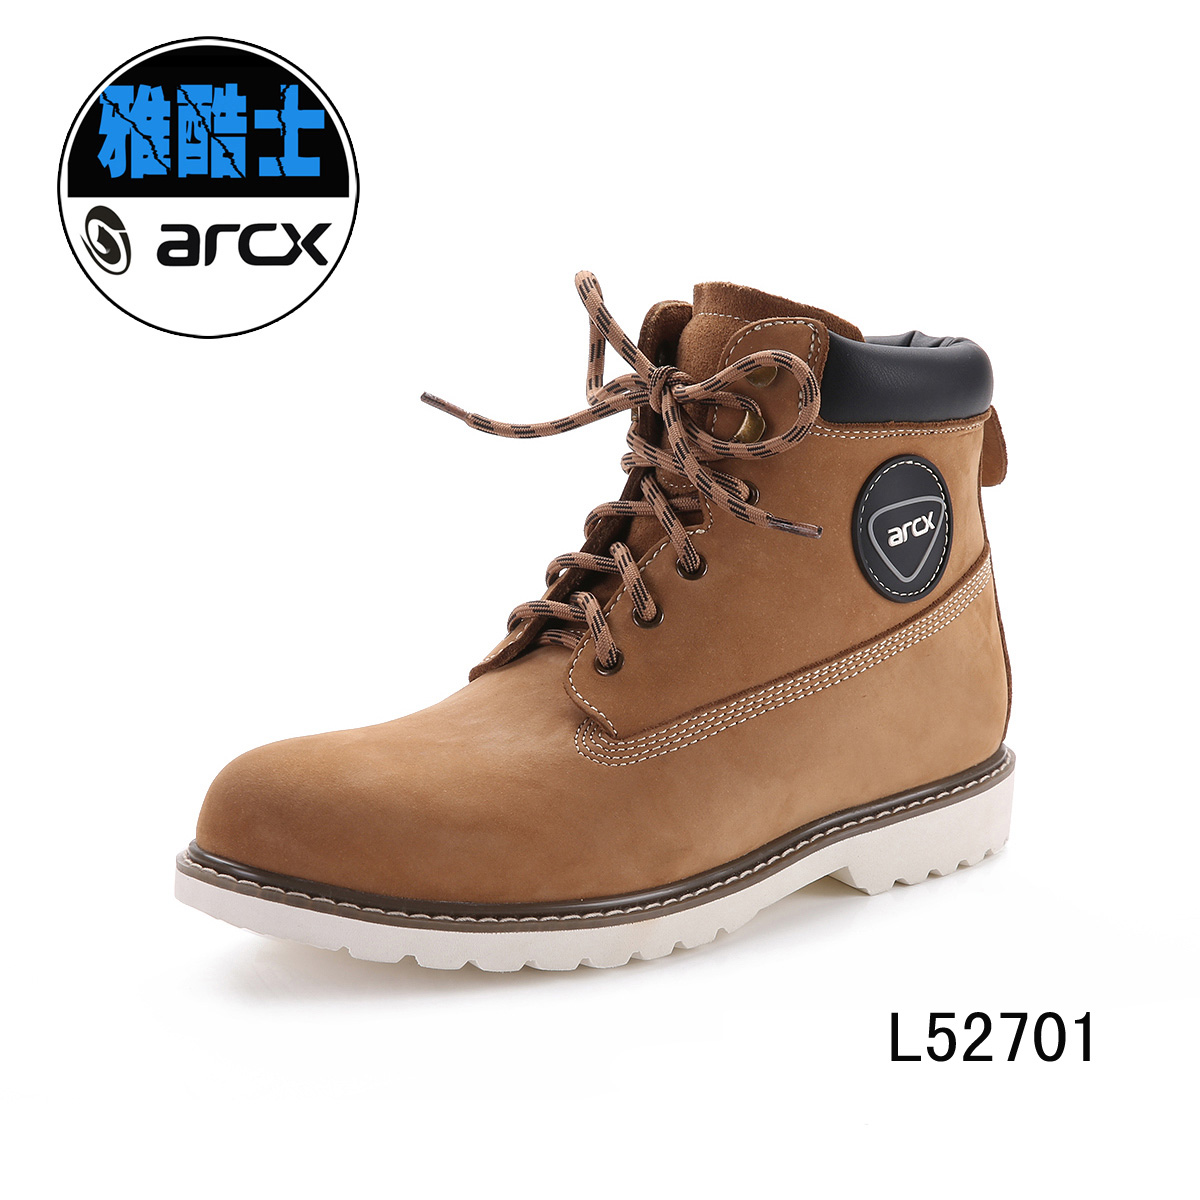 New arrival tooling shoes motorcycle casual shoes ride shoes motorcycle boots medium cut automobile race boots zildjian 20 zht medium ride